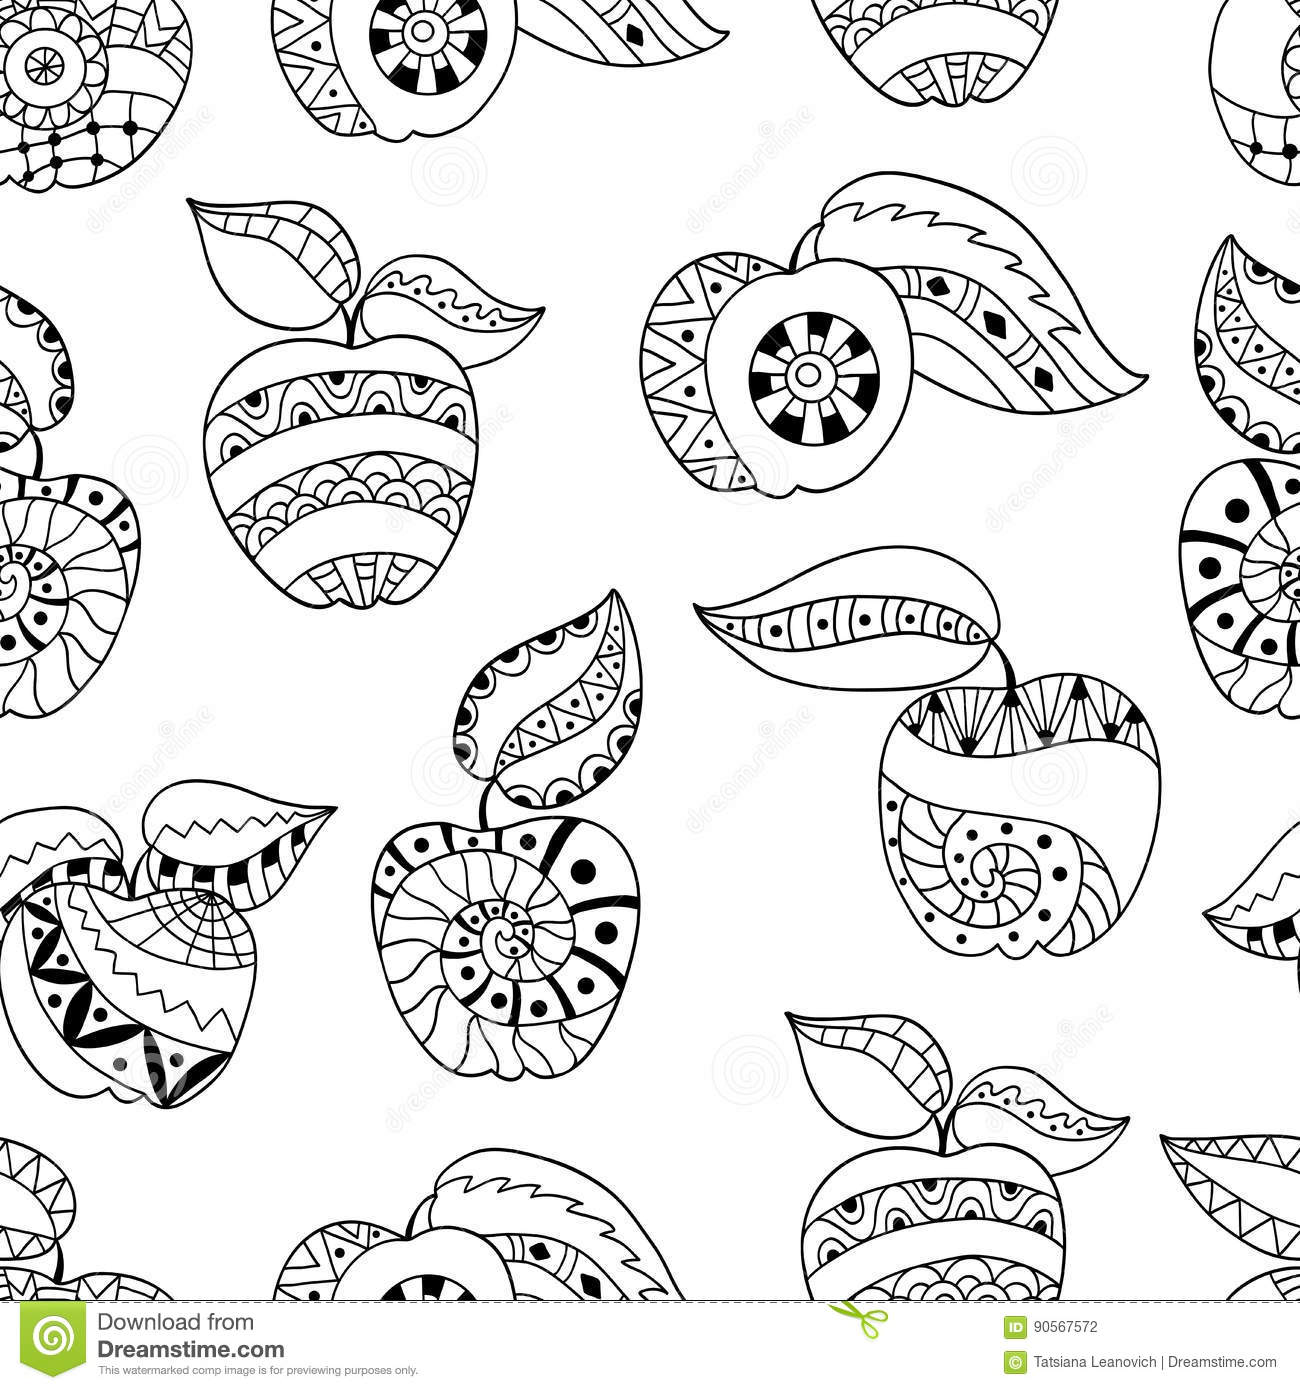 starburst coloring pages - photo#23